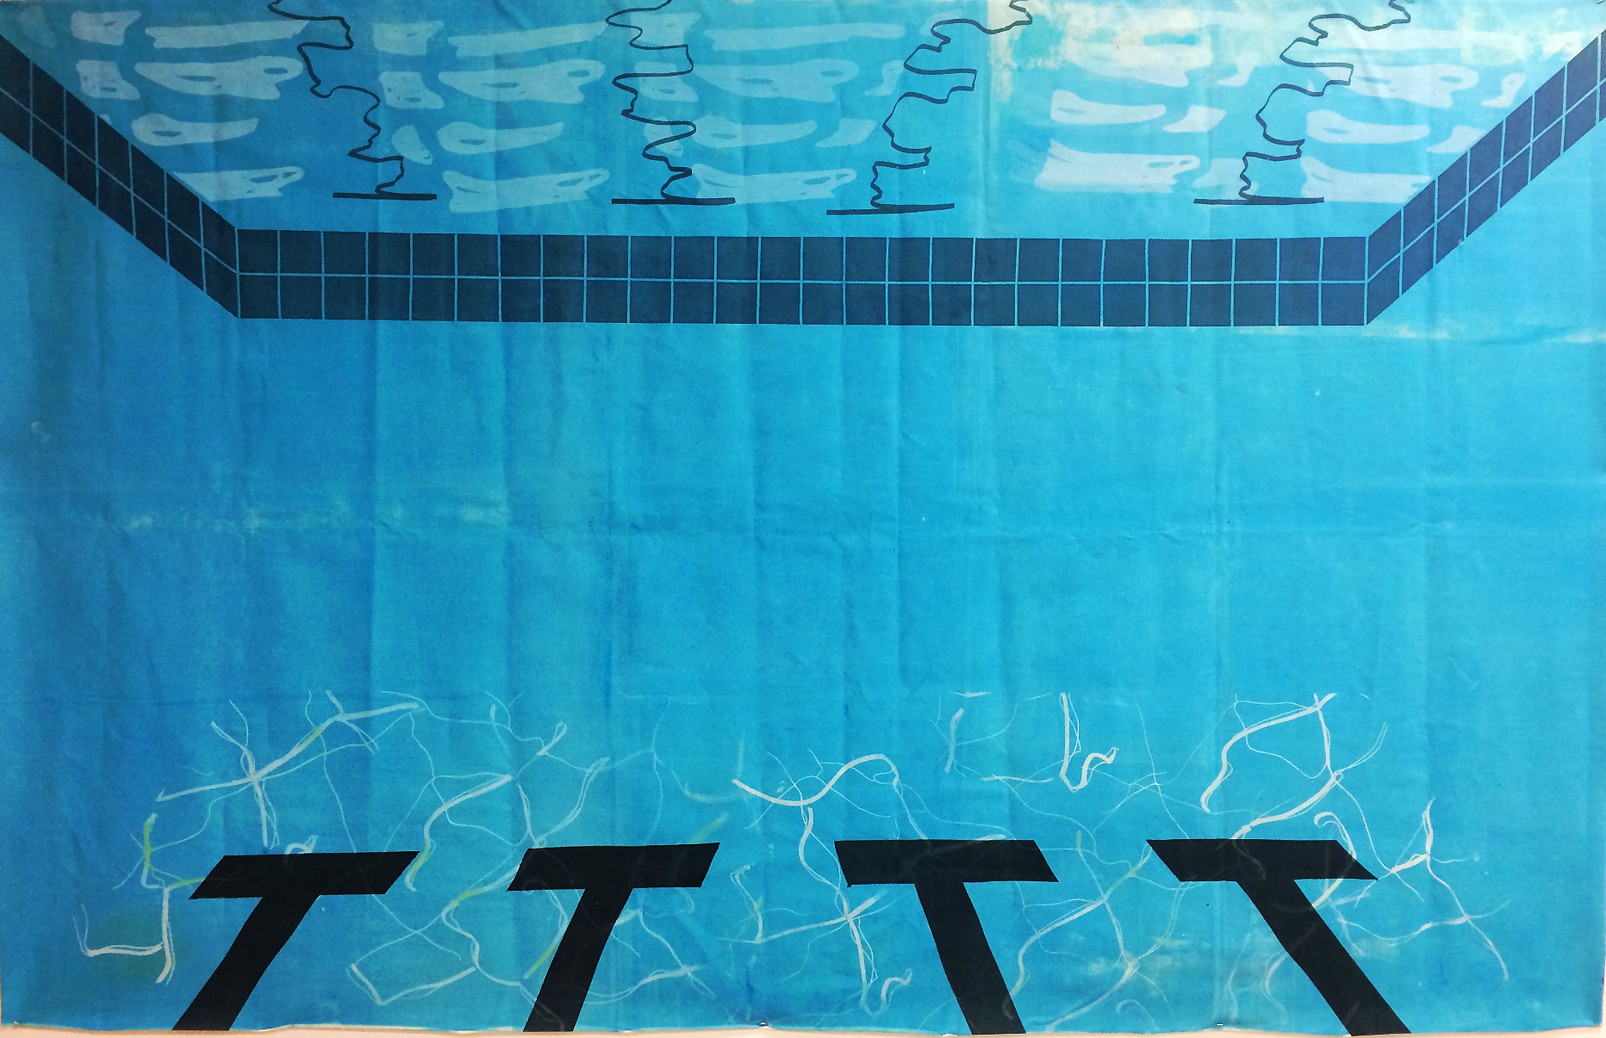 Pool 2 (large scale screenprint on canvas, 2015)